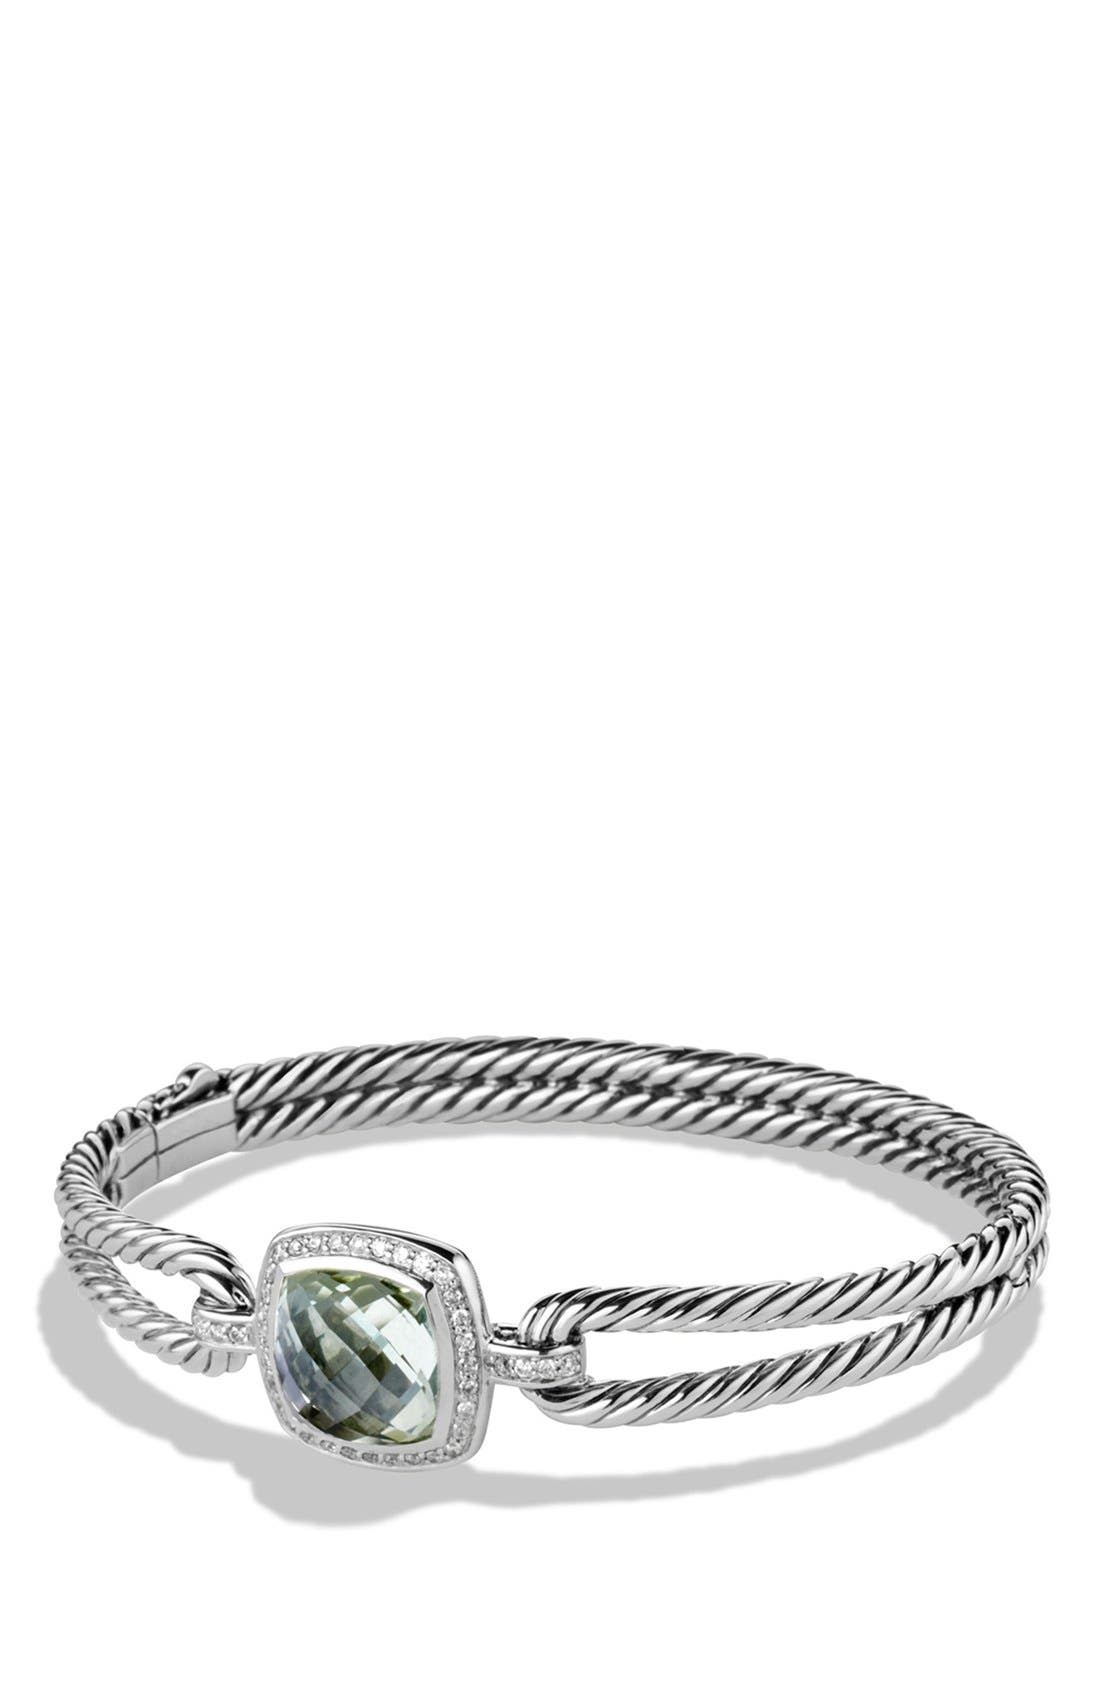 David Yurman 'Albion' Bracelet with Semiprecious Stone and Diamonds